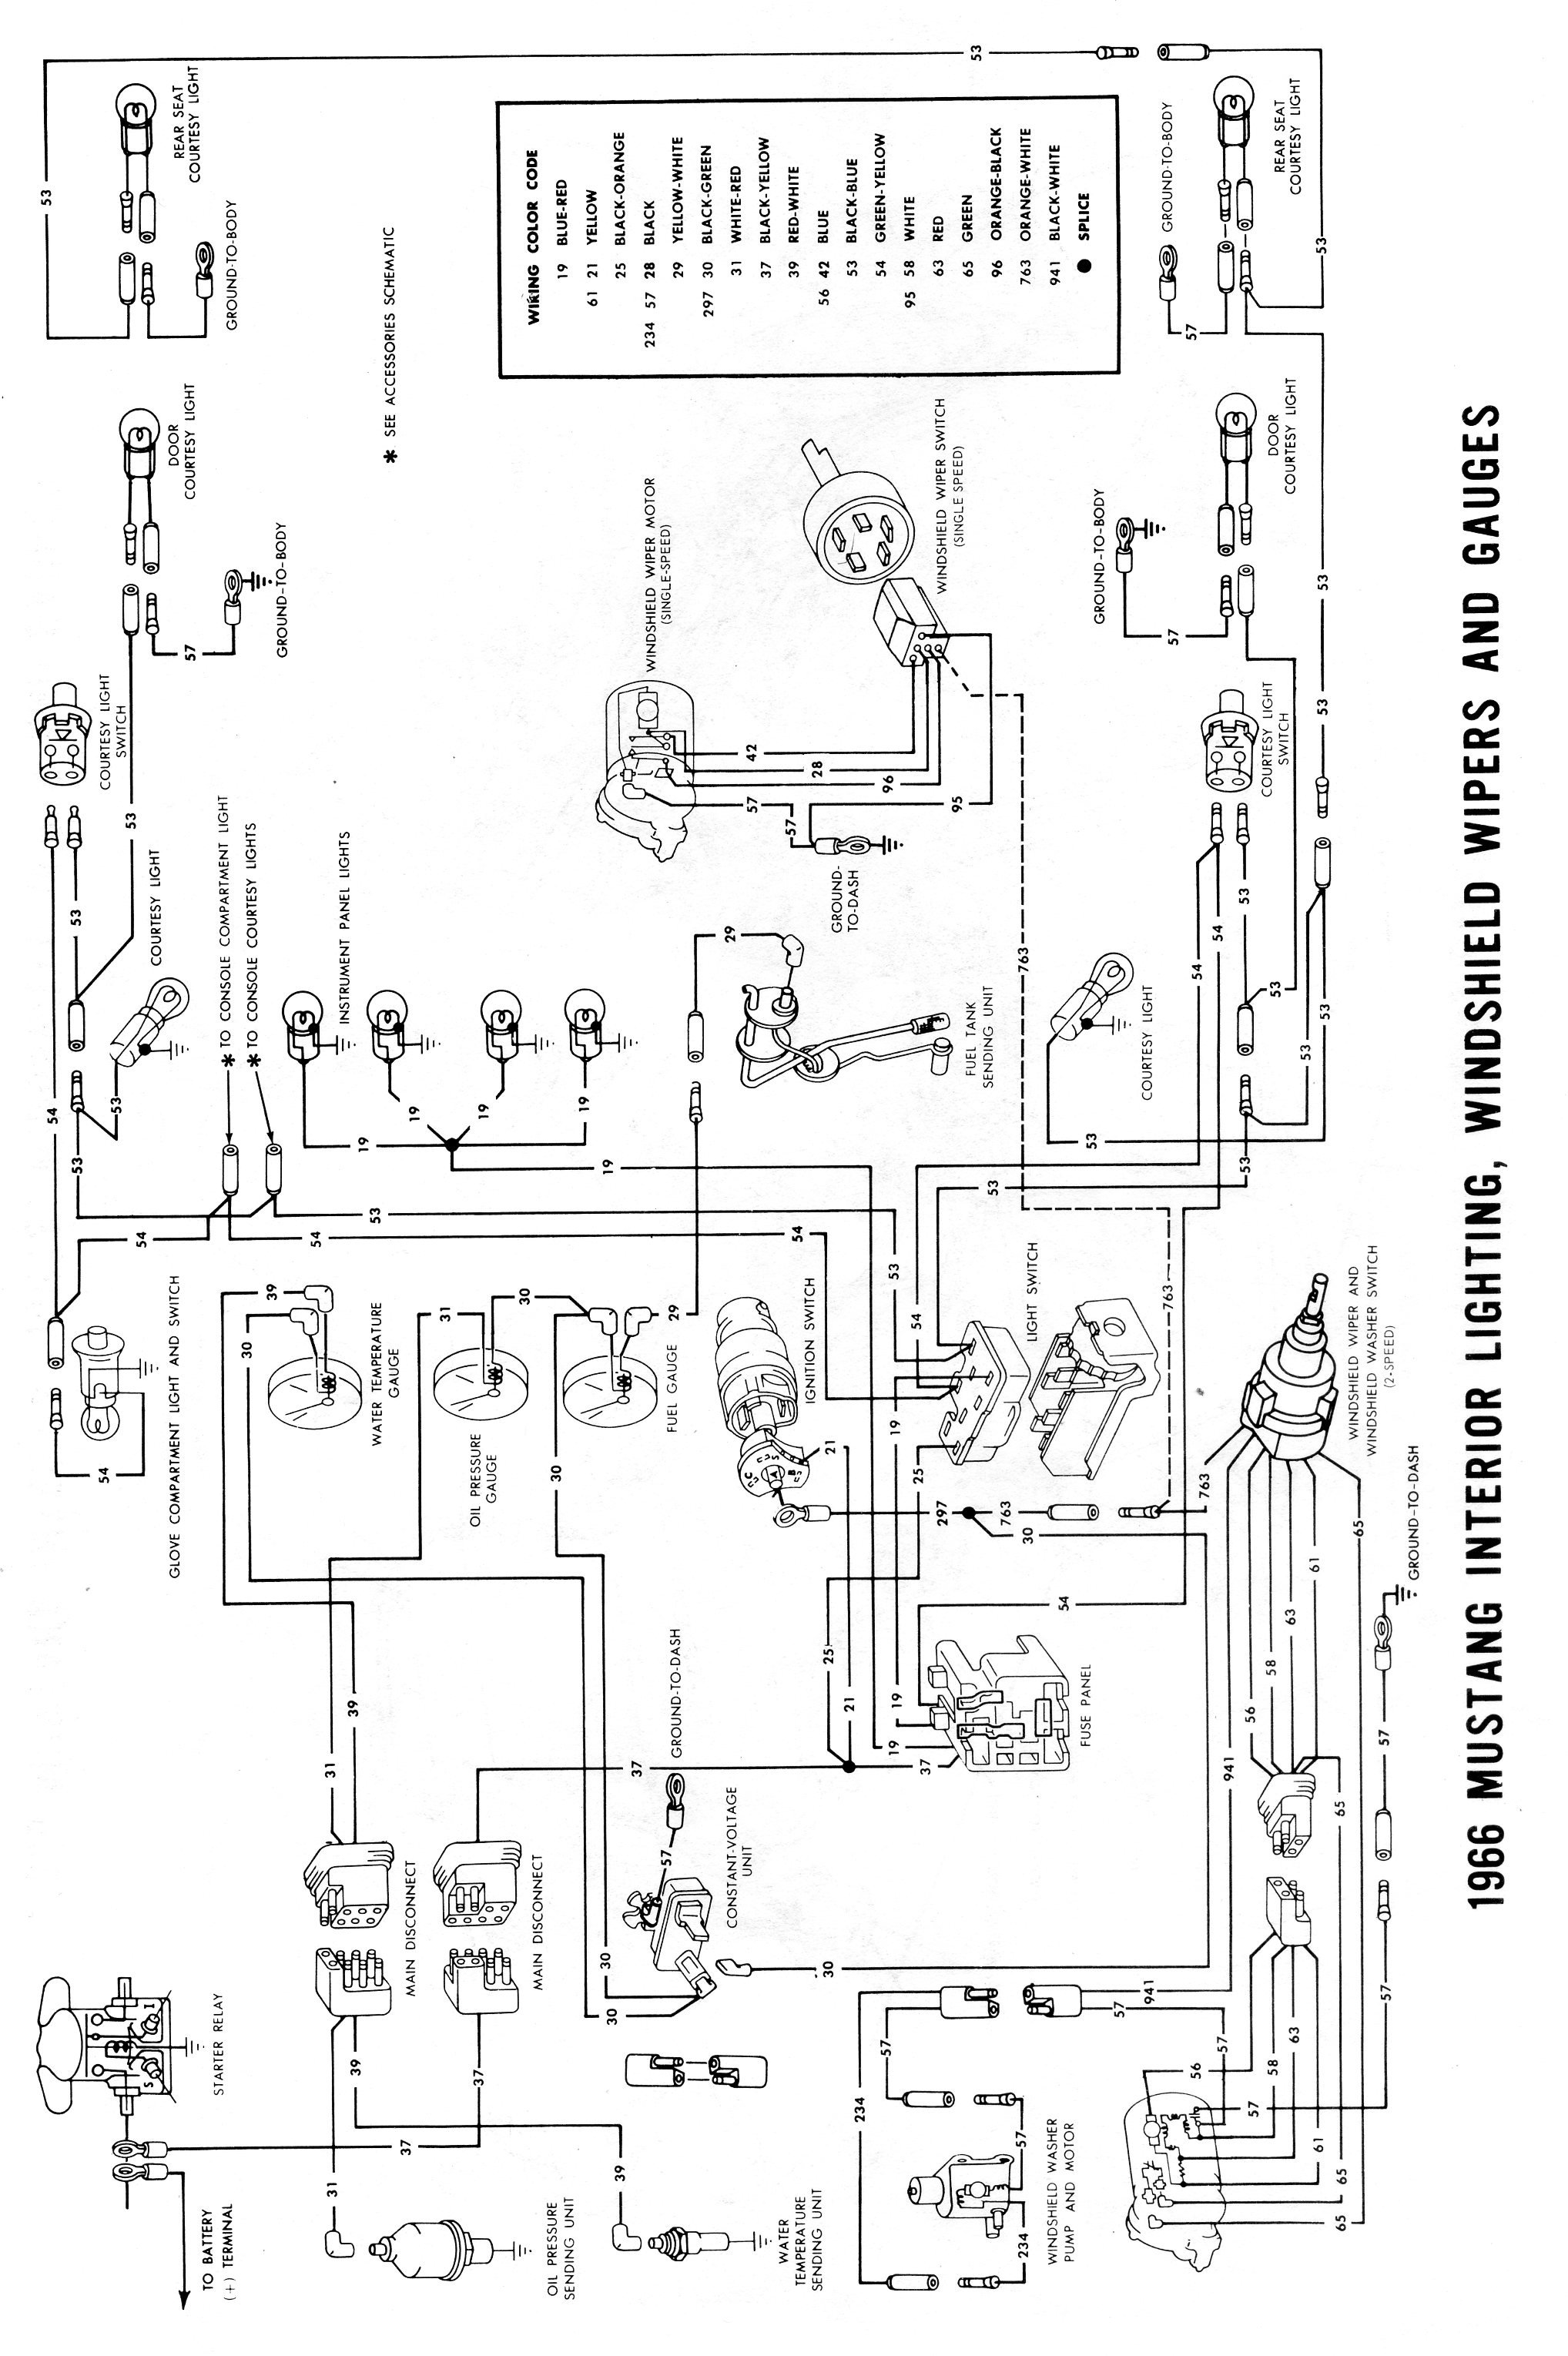 wiring diagram at fuse box 1973 cougar wiring why does my instrument fuse keep blowing out ford mustang forum on wiring diagram at fuse